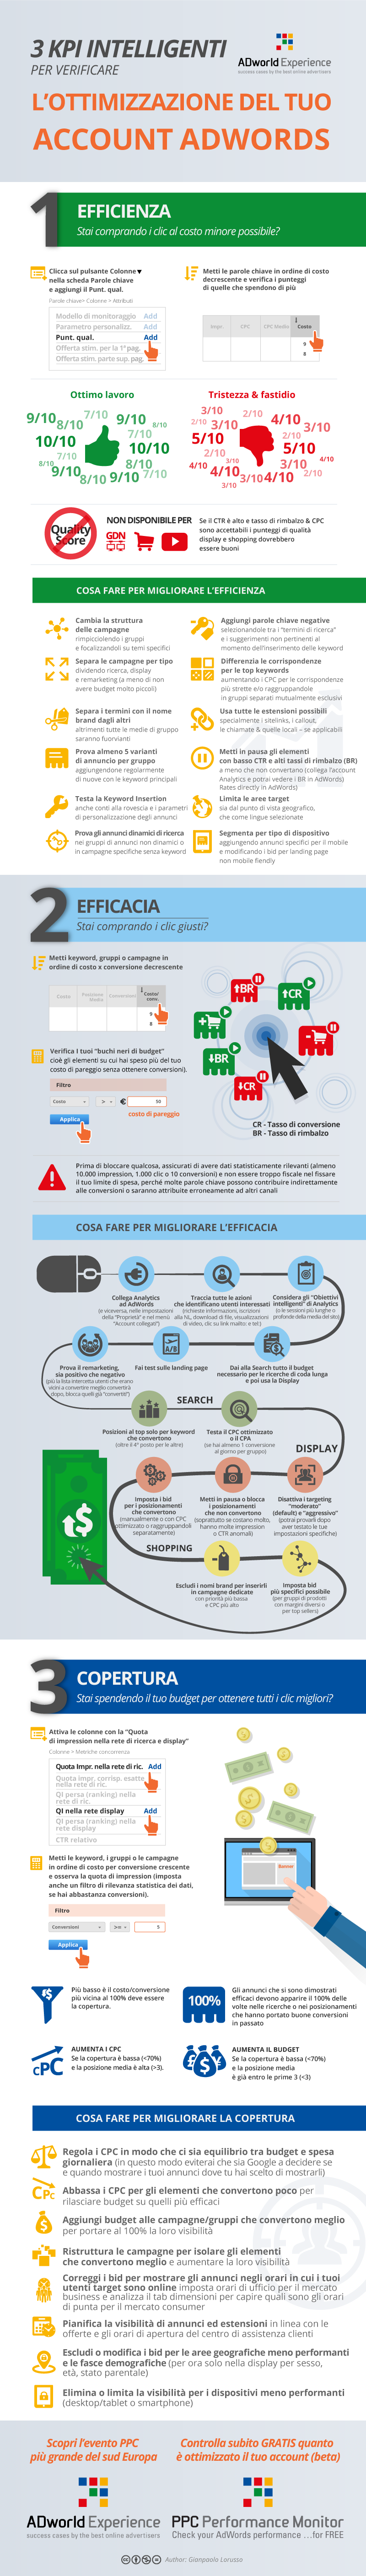 Adwexp-infographic_IT